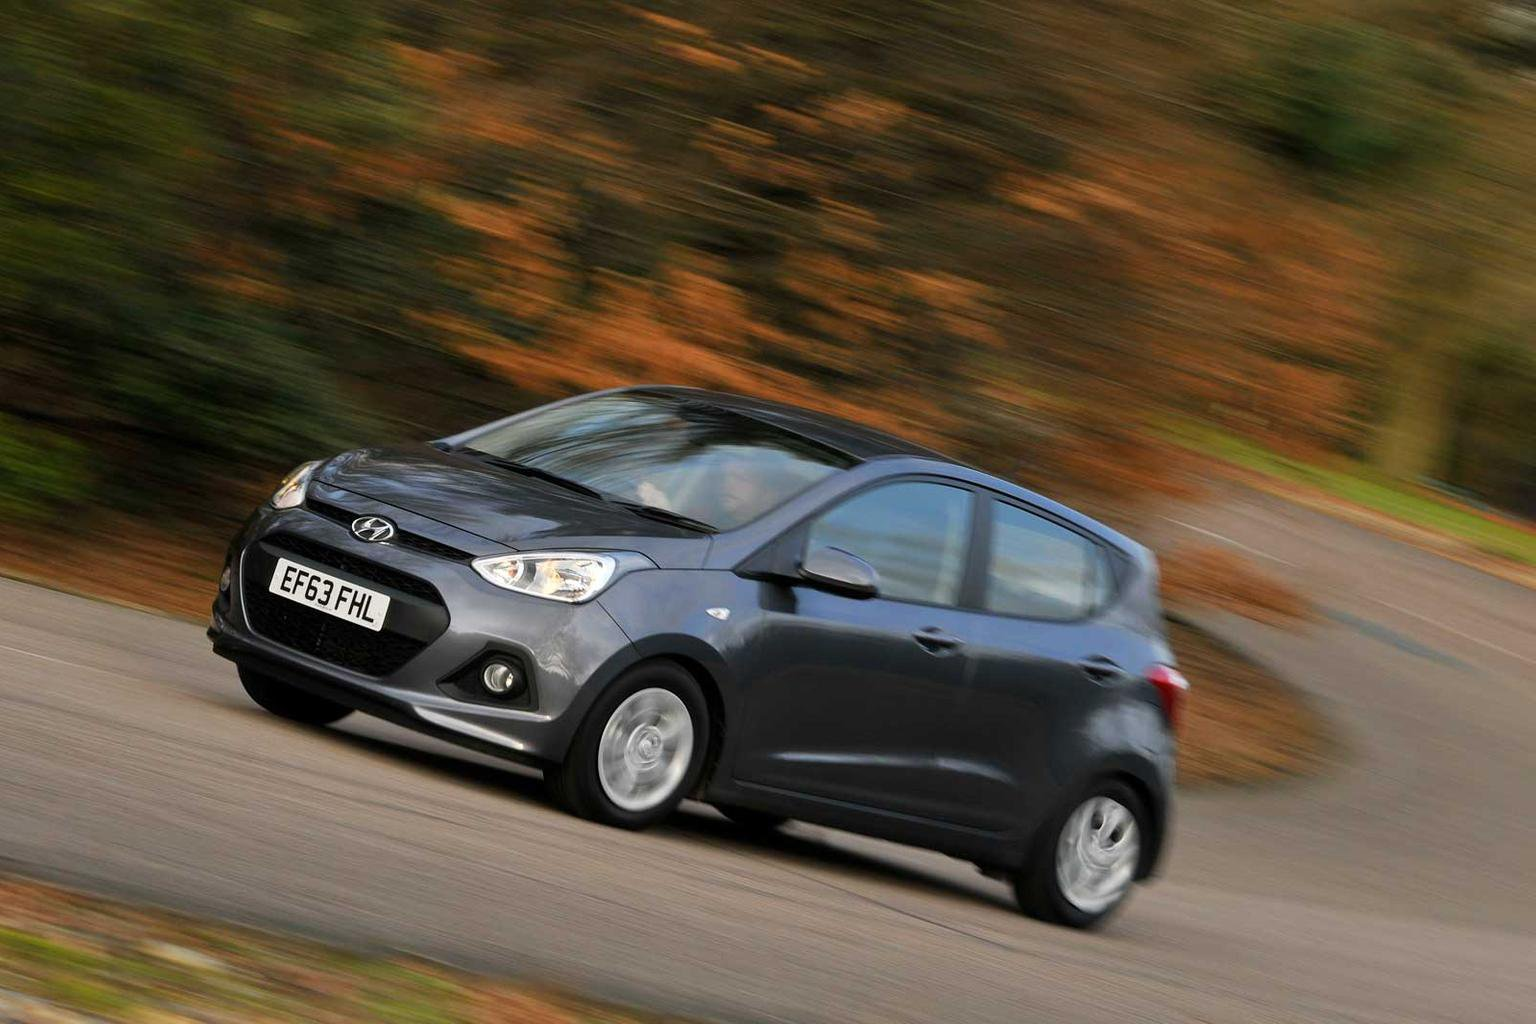 2014 Hyundai i10 review